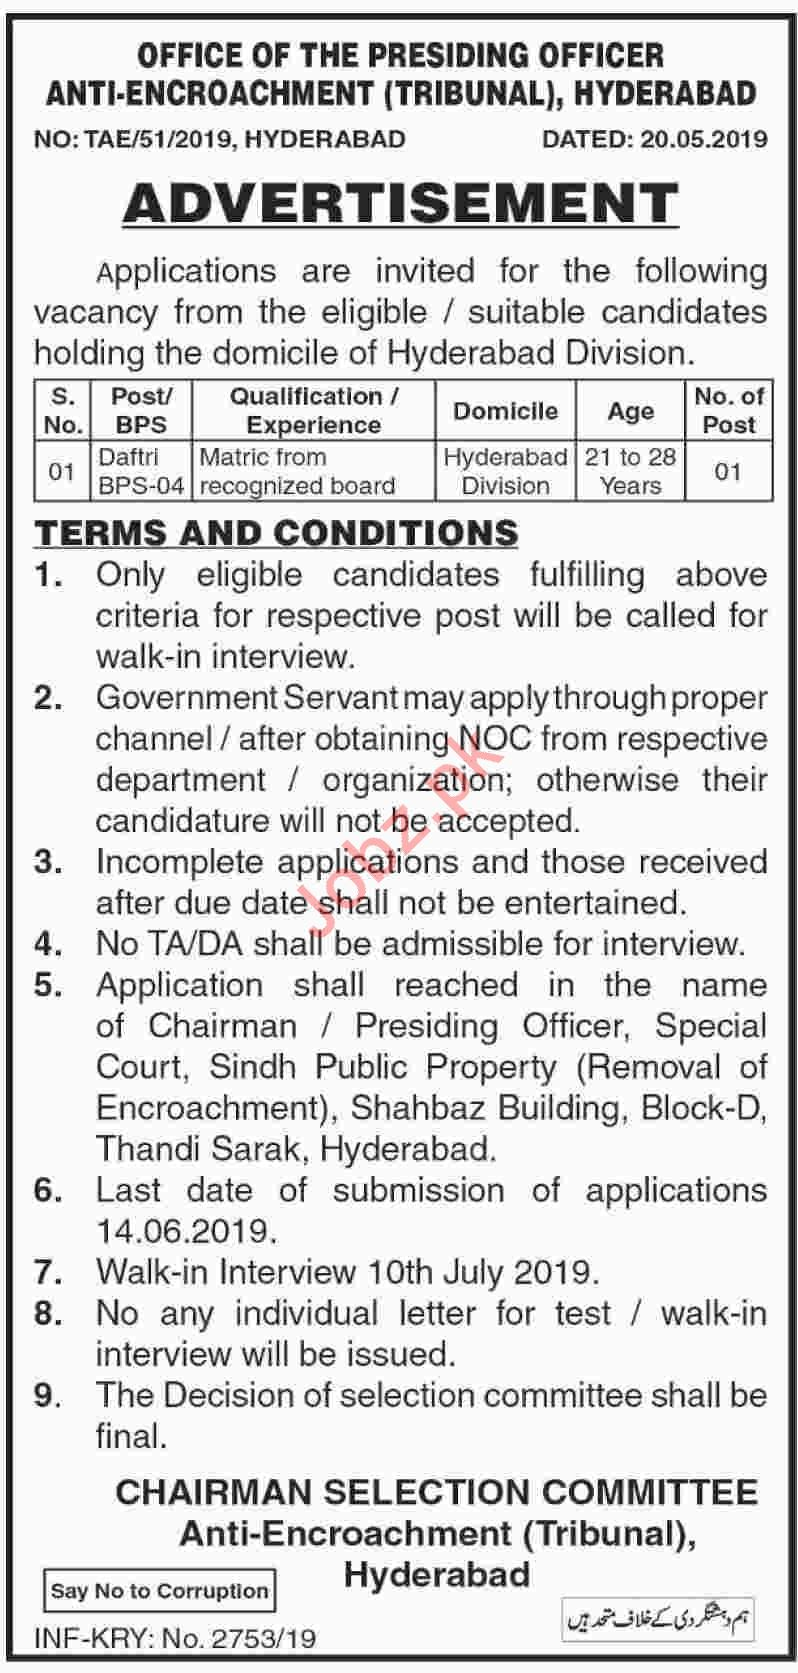 Tribunal Anti Encroachment Hyderabad Jobs for Daftri